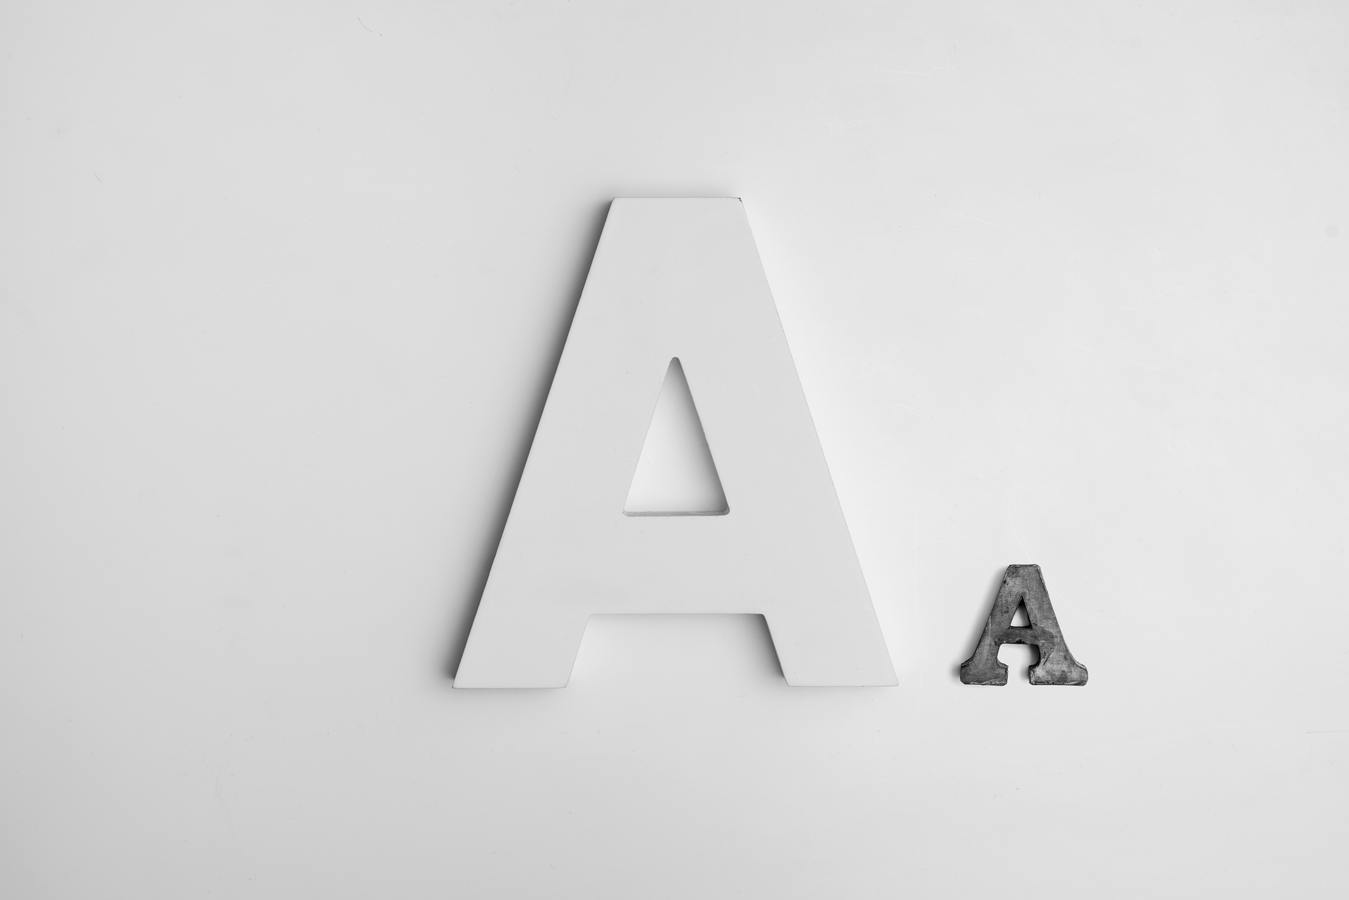 White letter A and small gray letter A